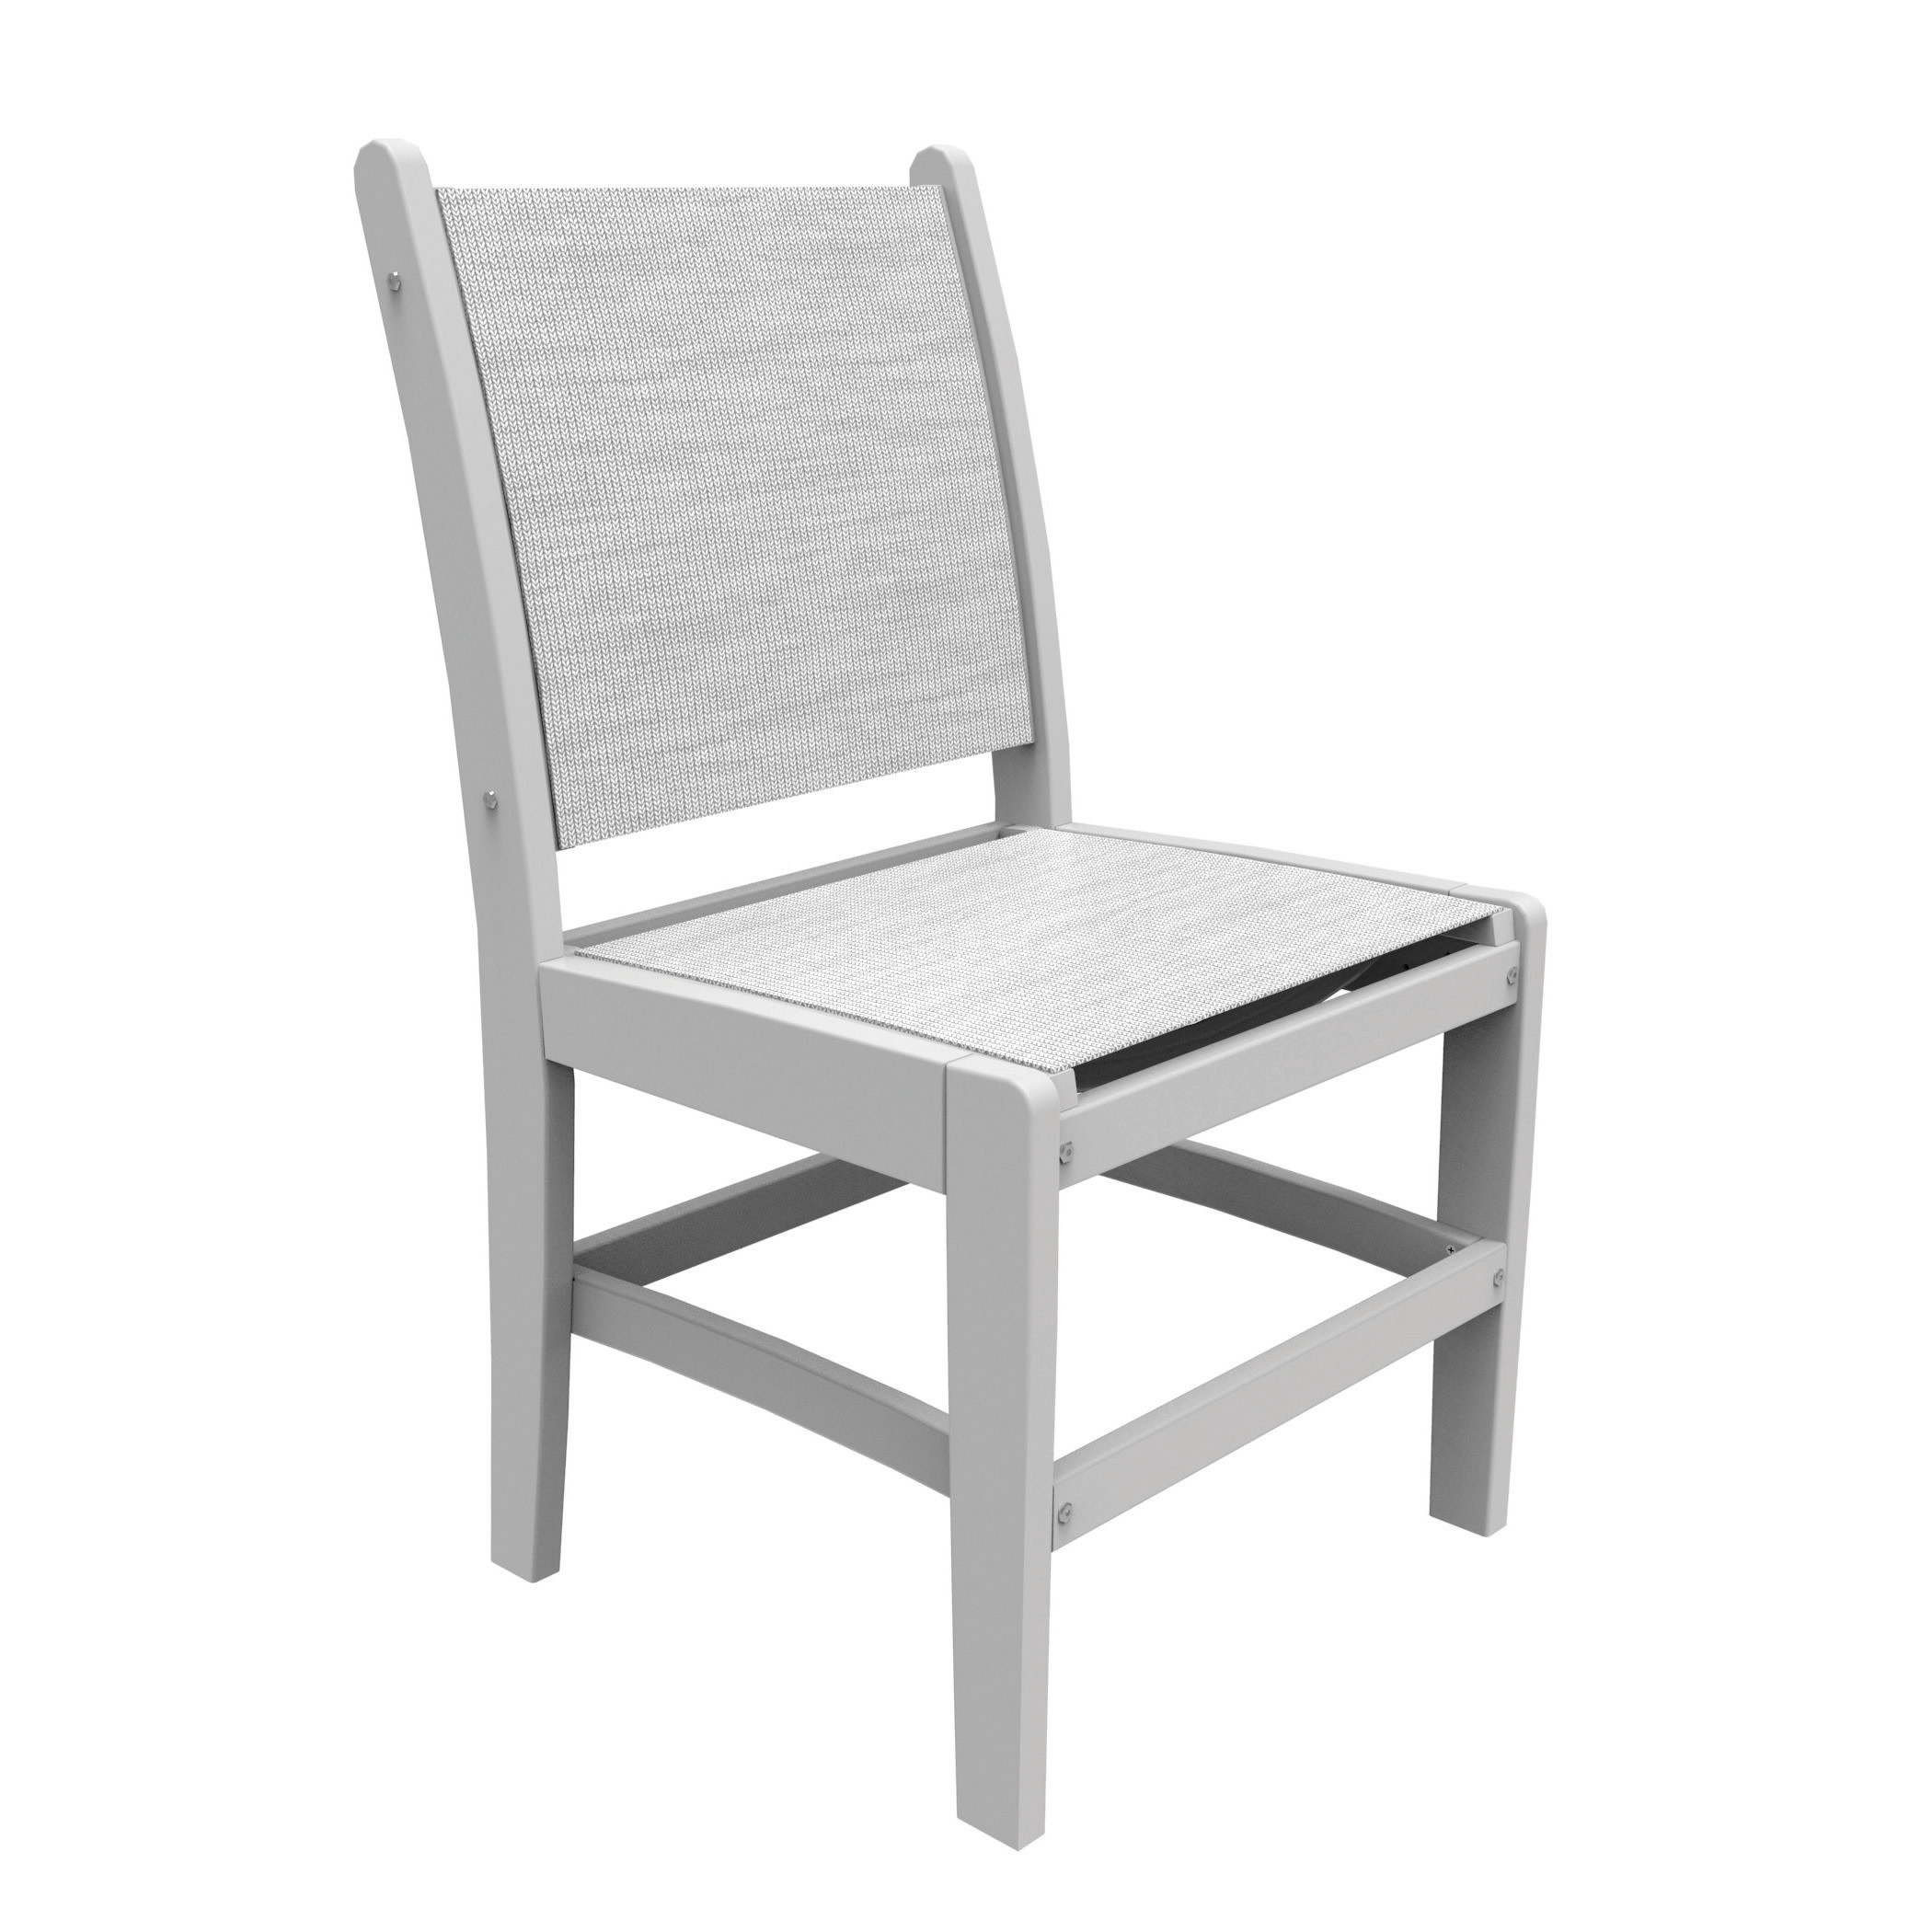 Malibu Outdoor Maywood Sling Side Chair (Sold in Pairs)